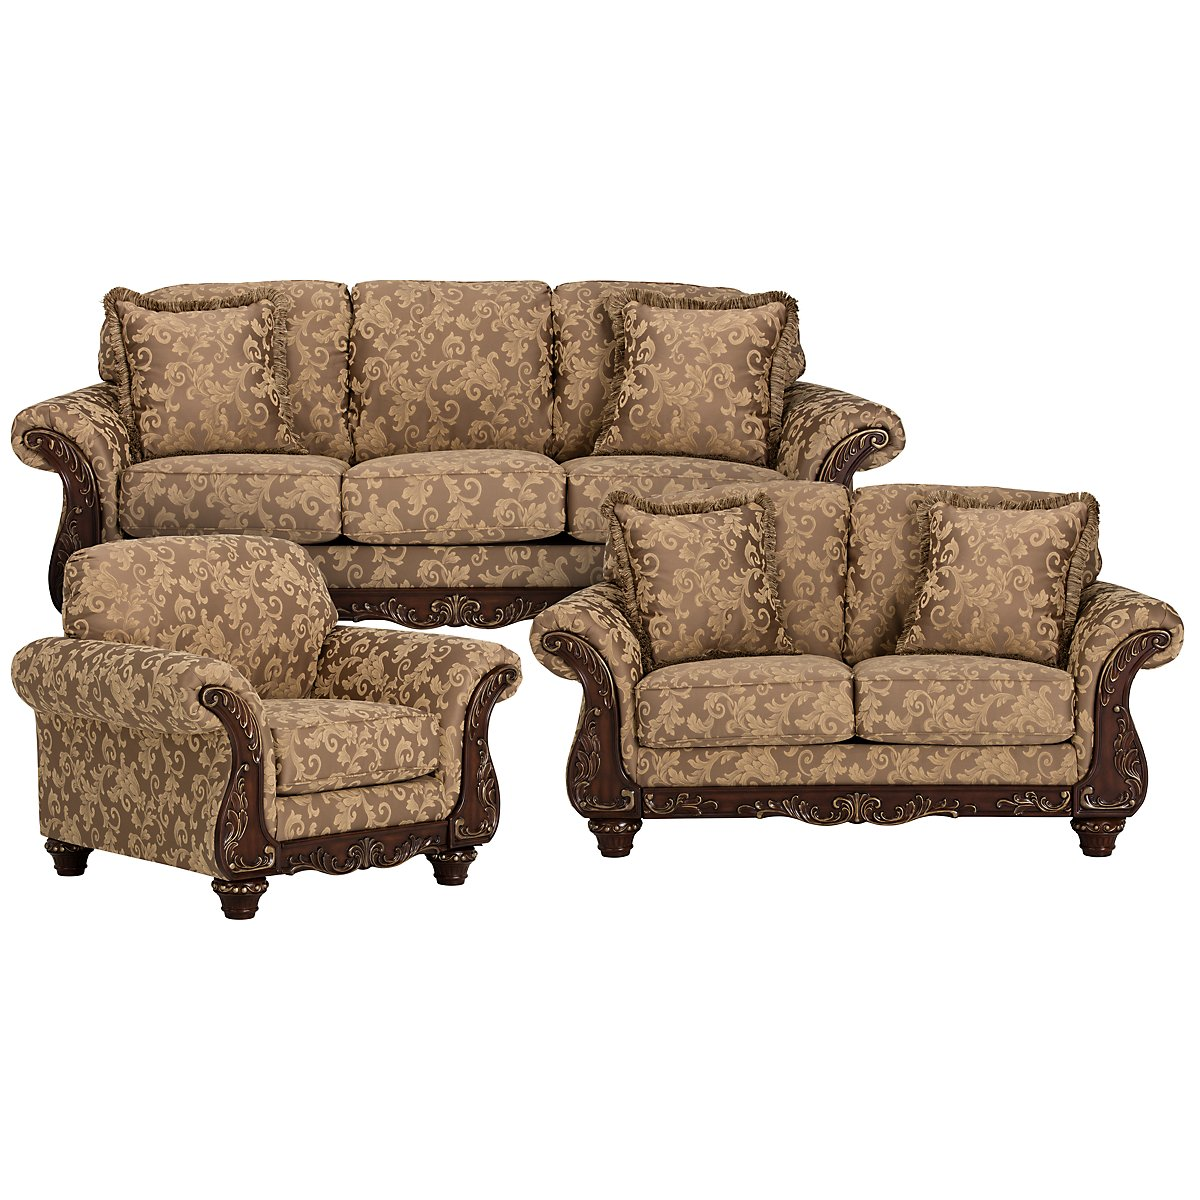 Irwindale Multicolored Fabric Living RoomCity Furniture   Living Room Furniture   Living Room Sets. Fabric Living Room Furniture. Home Design Ideas